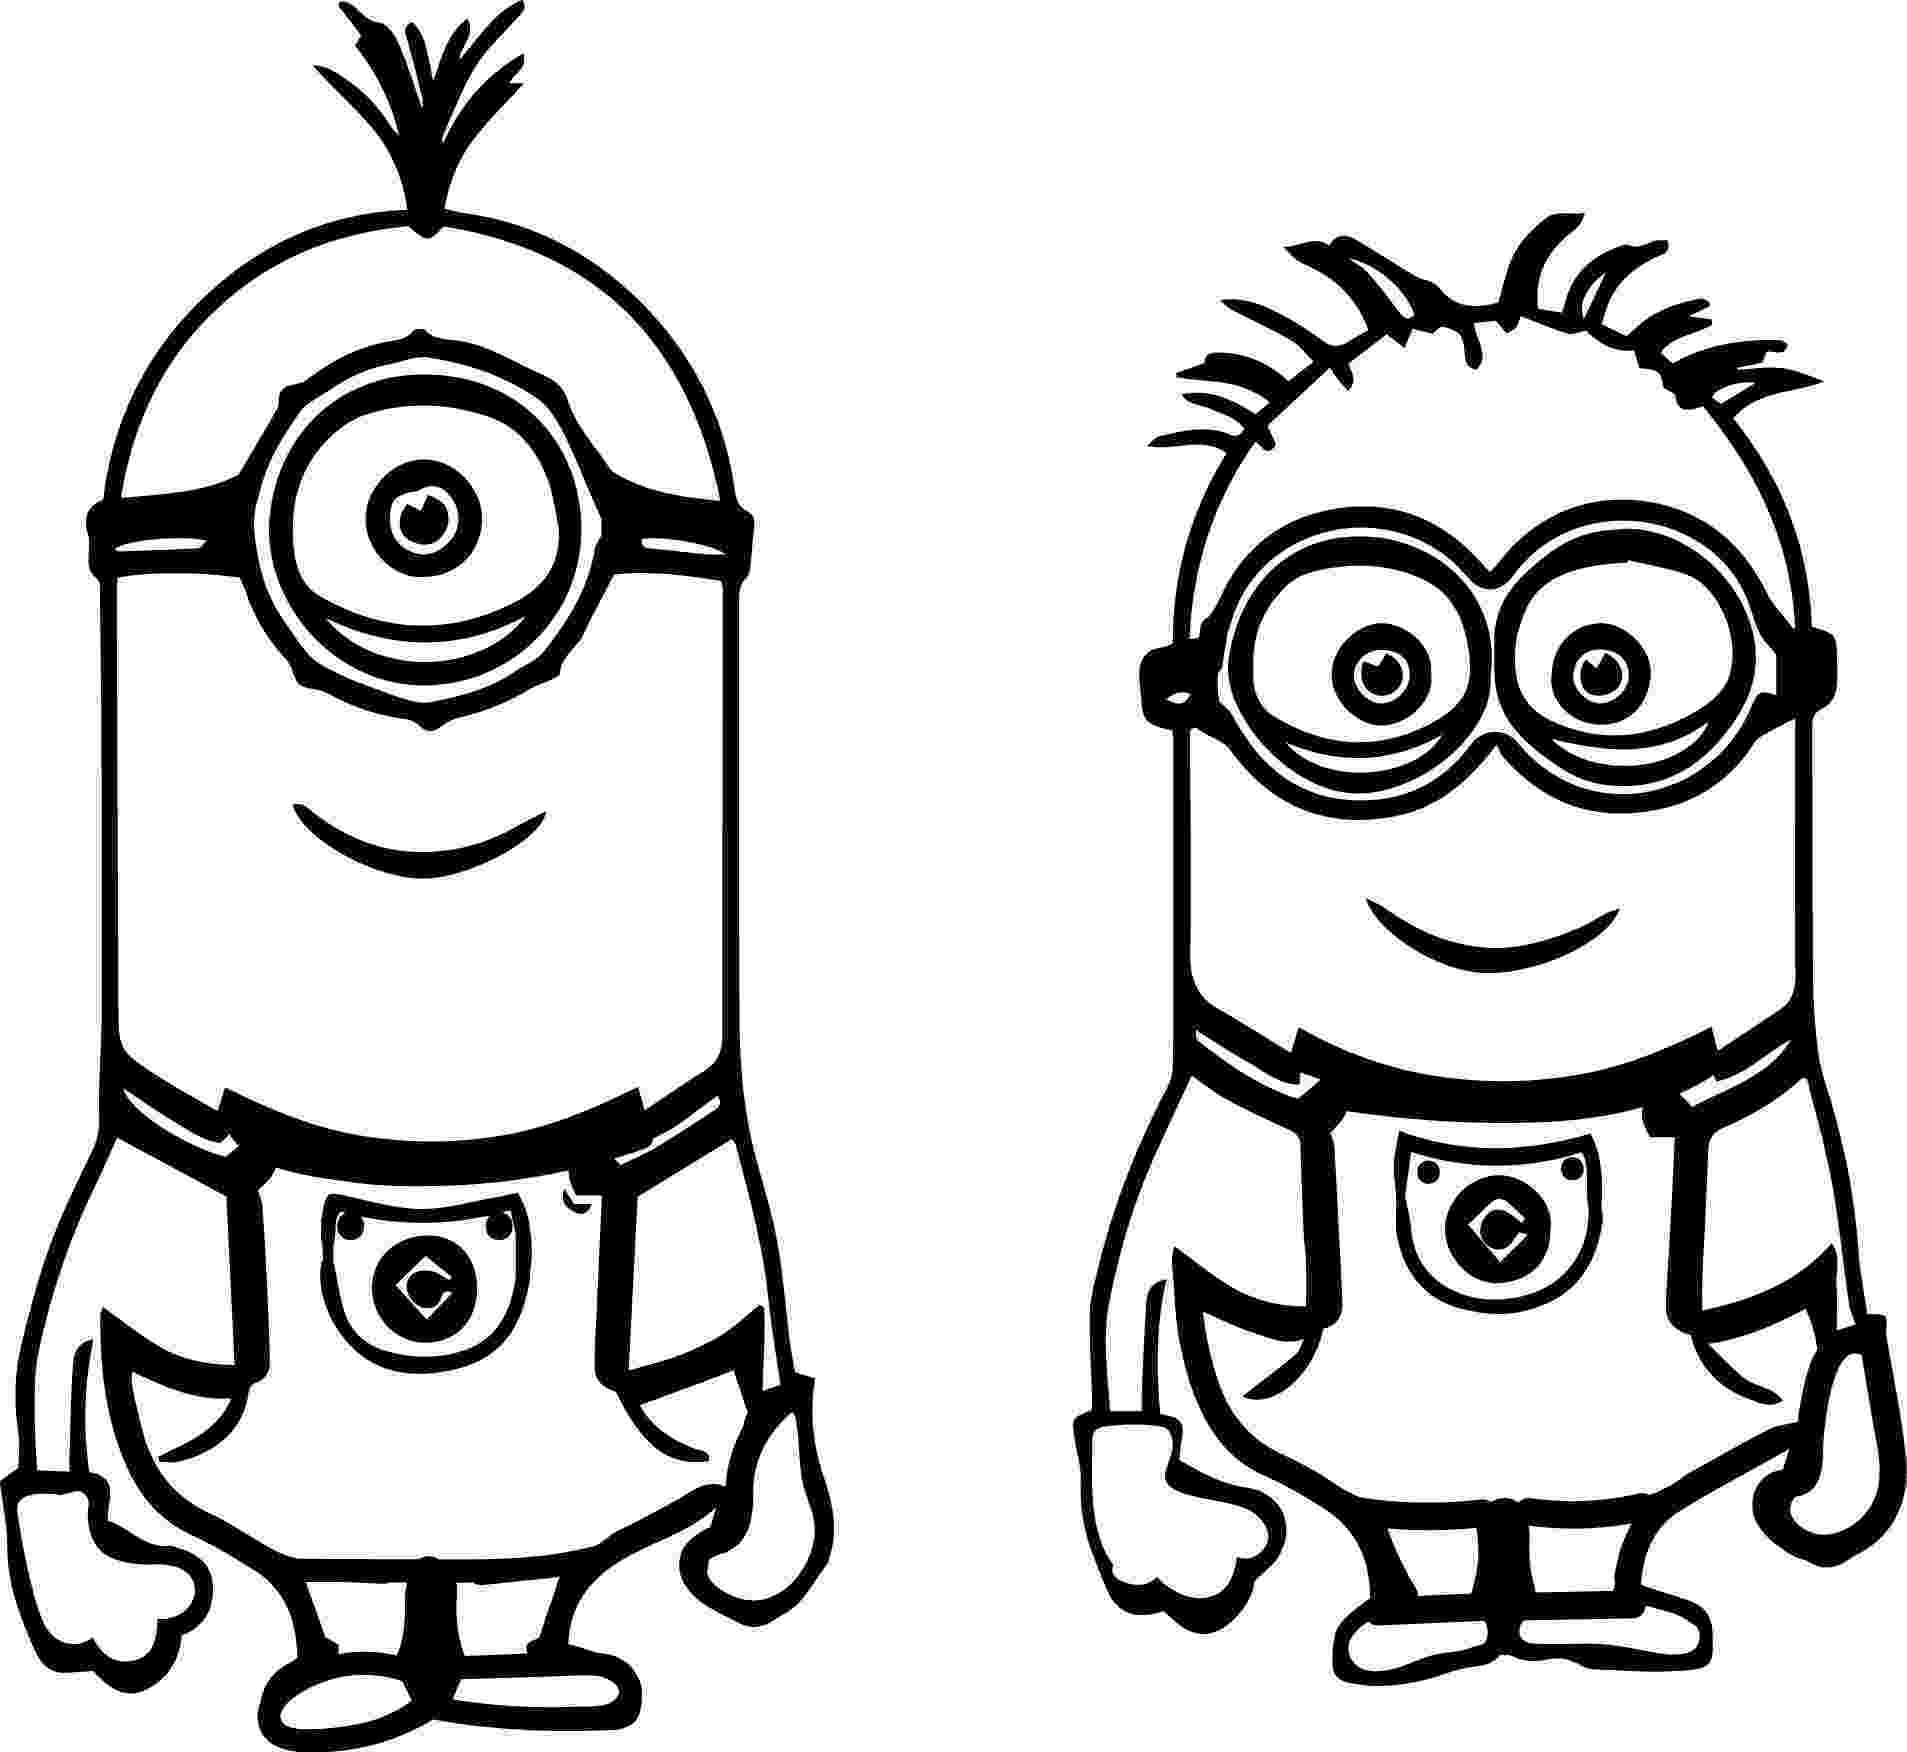 minion coloring pages online free coloring pages printable pictures to color kids online minion coloring pages